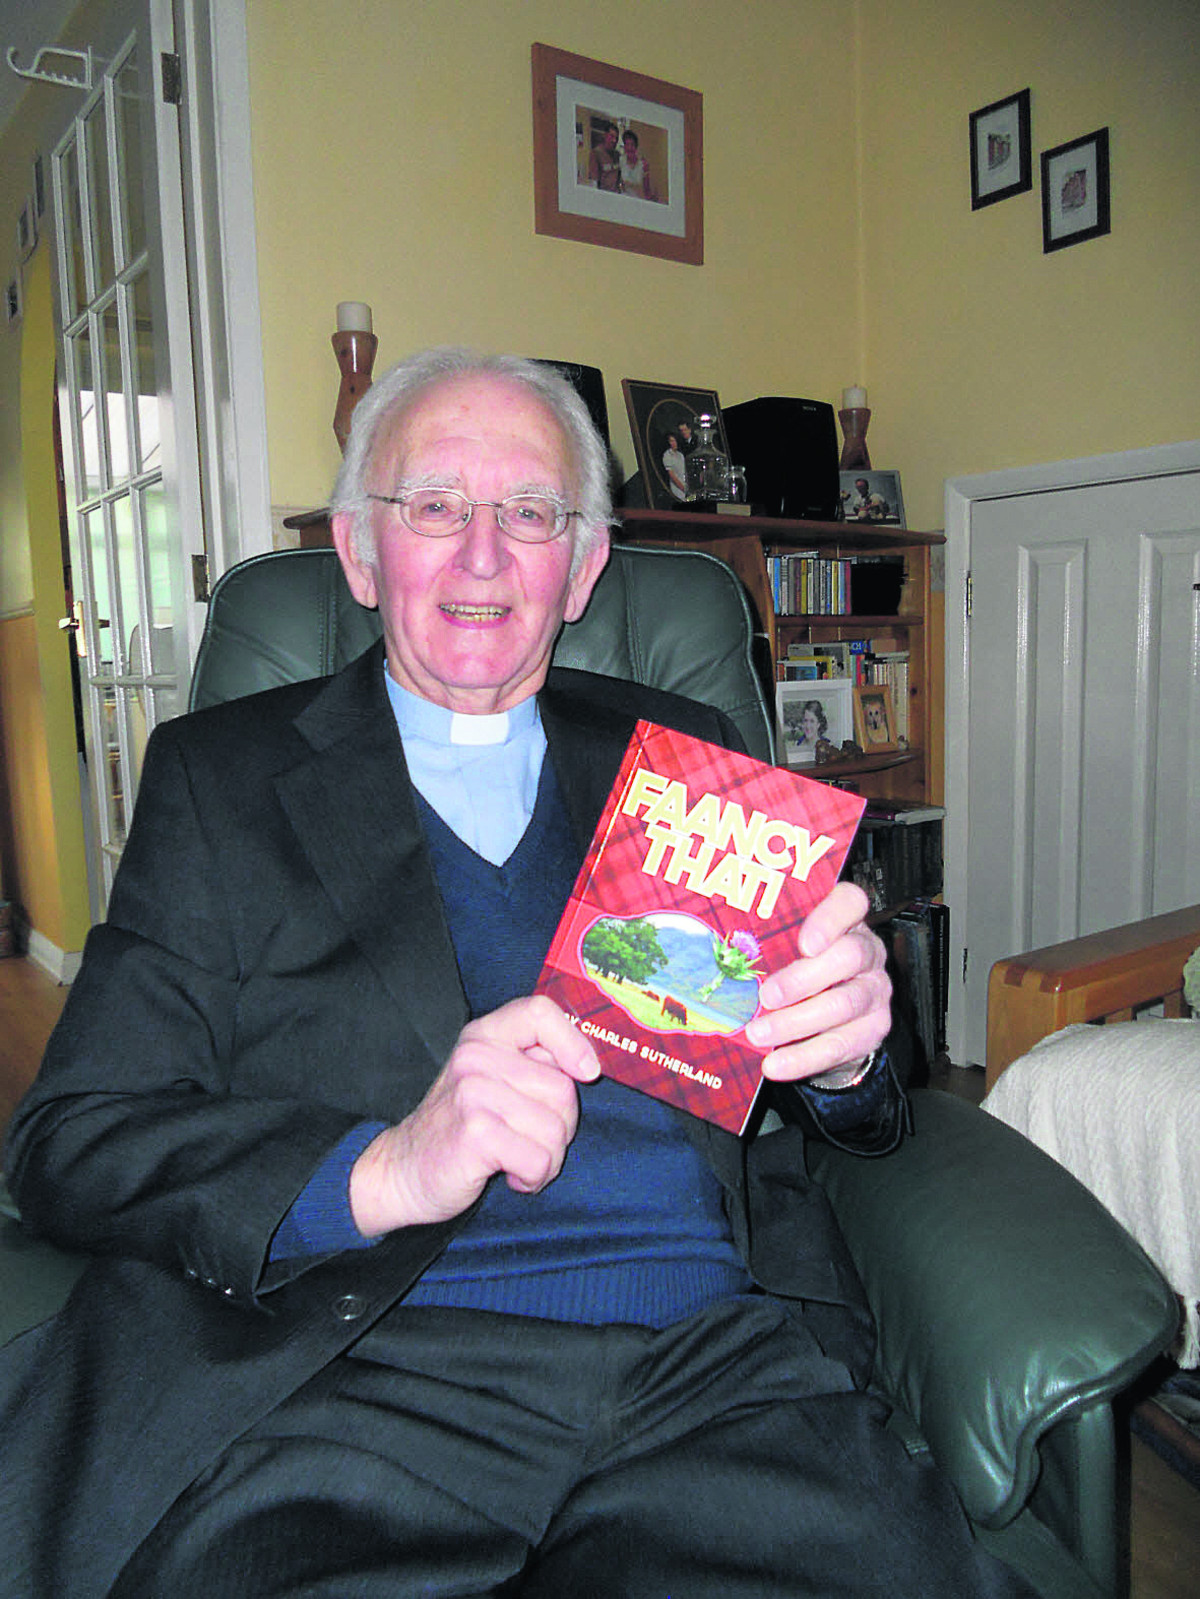 The Rev Charles Sutherland from Devizes with his new book called Faancy That!